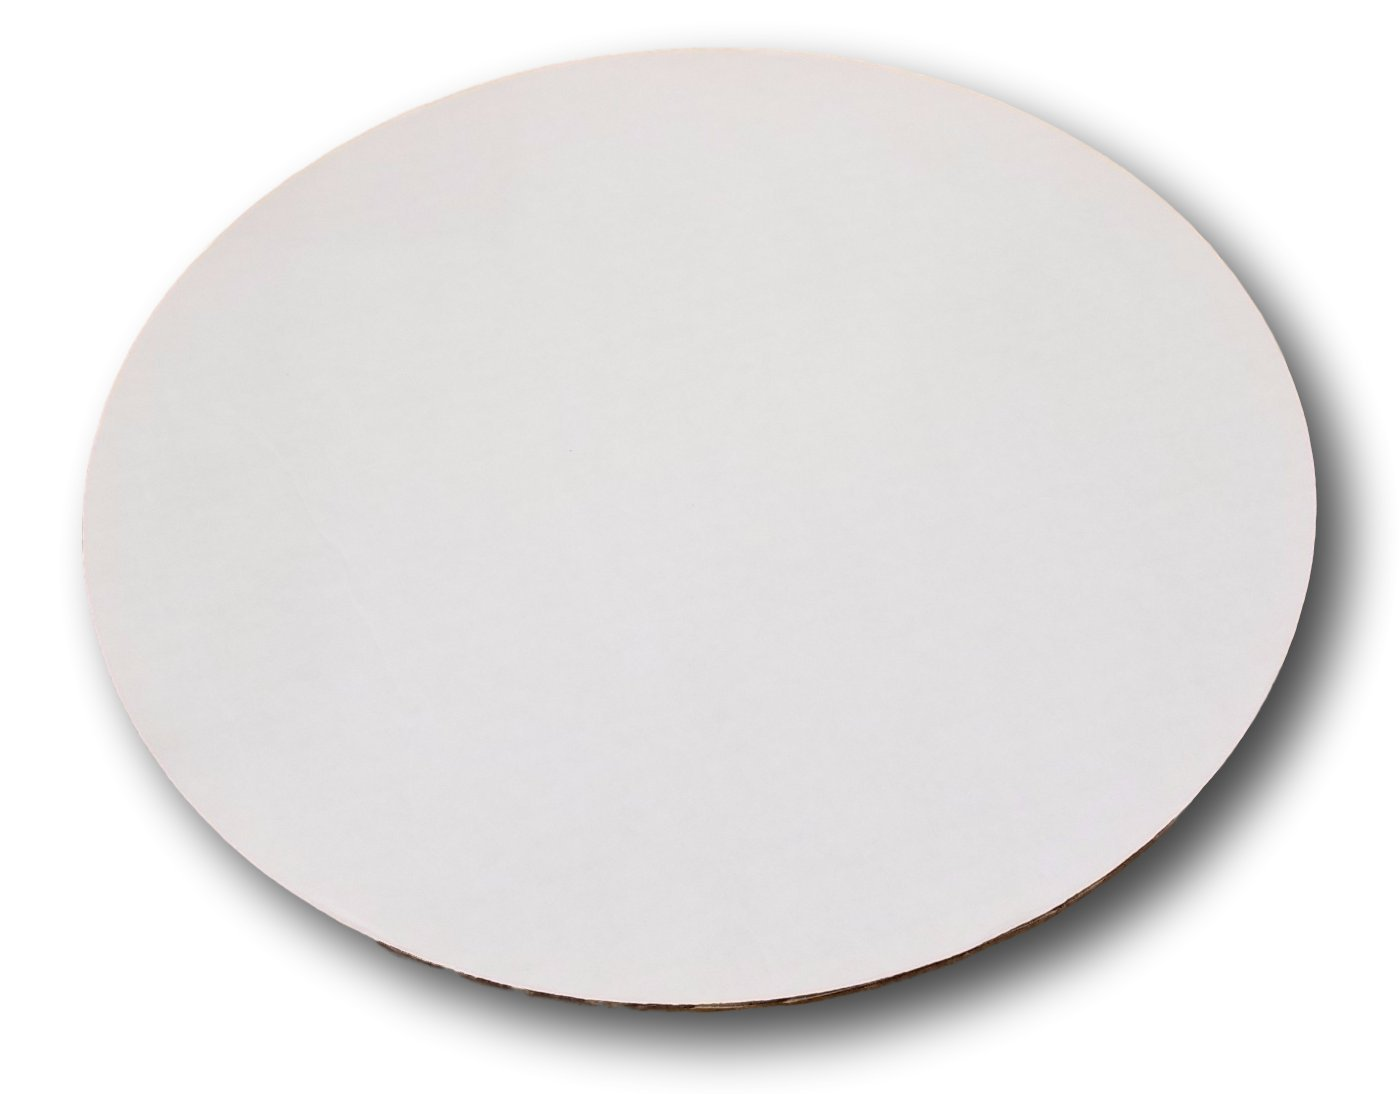 Corrugated Sturdy White Cake/Pizza Circle by MT Products (15 Pieces) (10 Inch) 10CIRCLE15